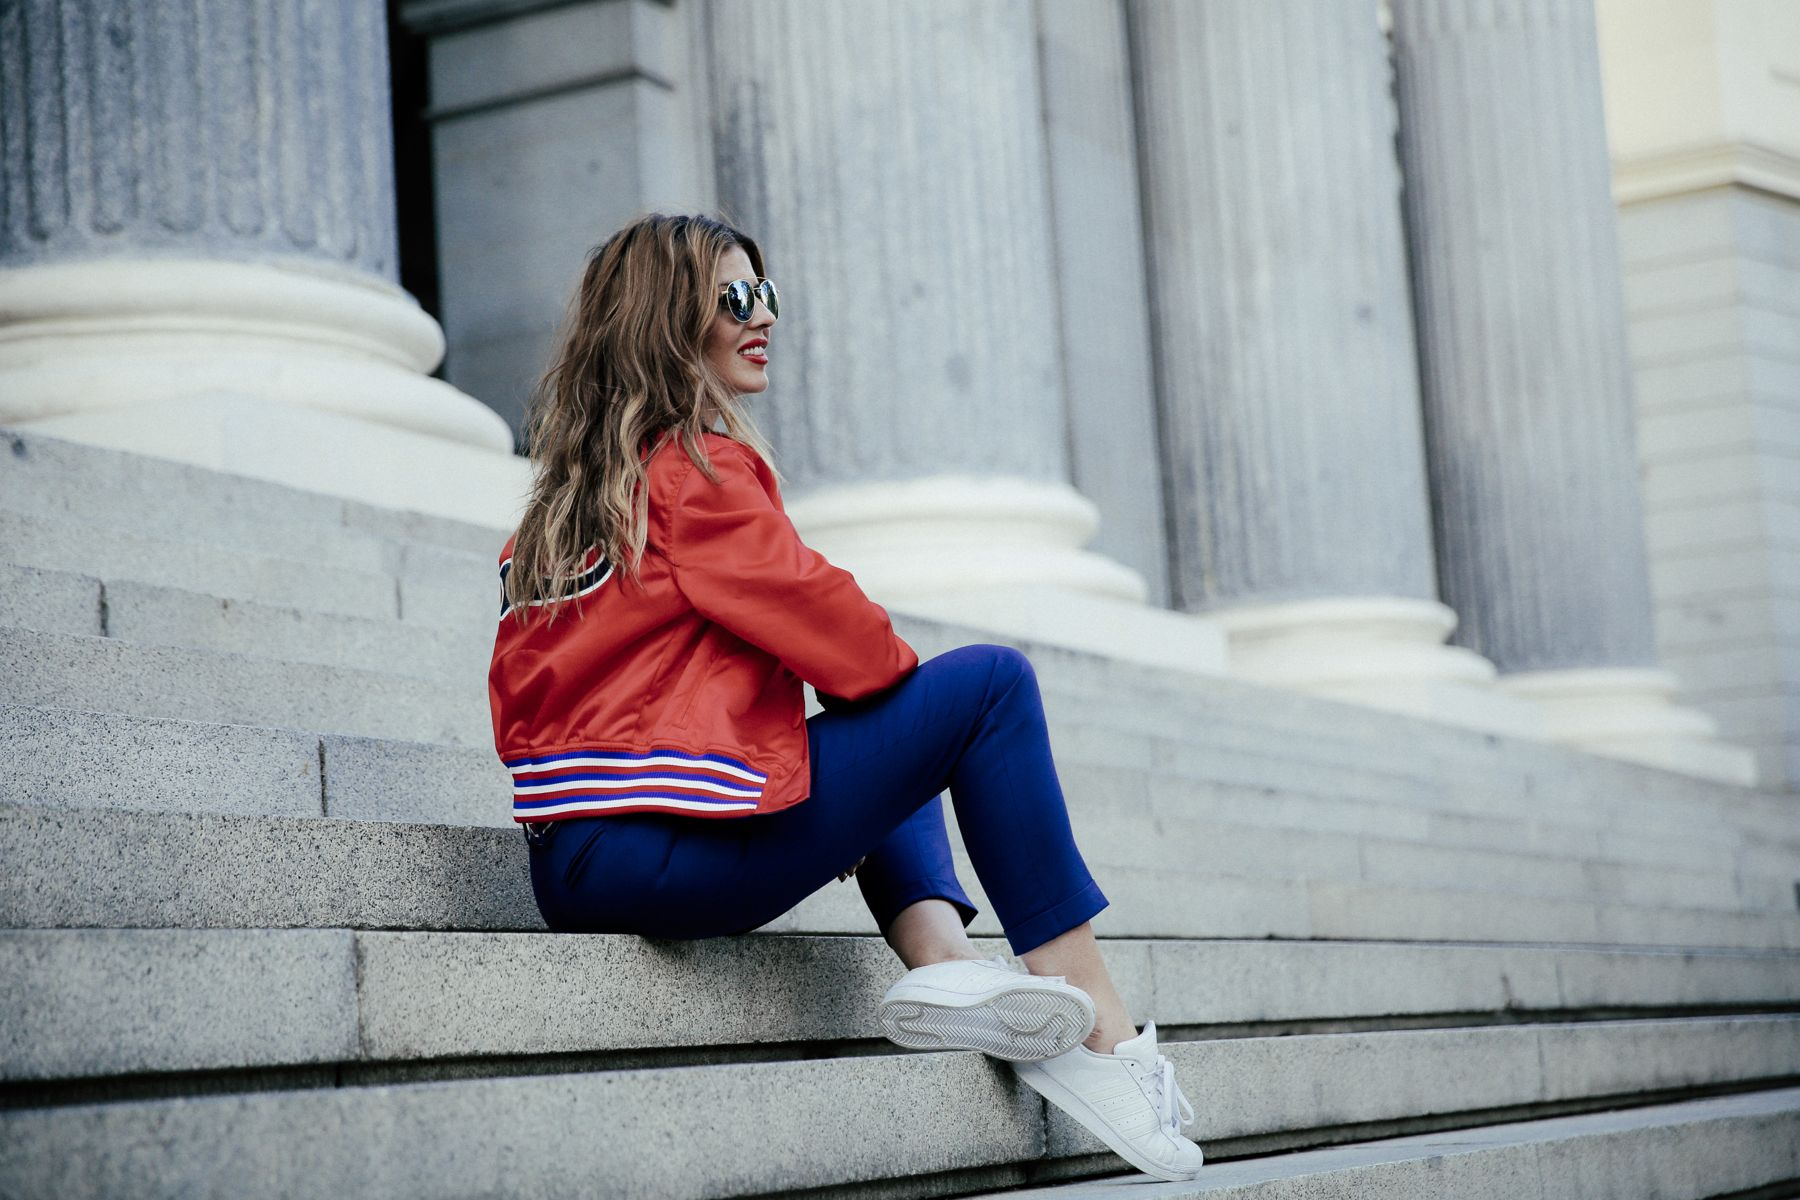 adidas zapatillas sneakers superstar tommy hilfiger collection pants pantalones bomber jacket chaqueta zara top sunglasses gafas de sol madrid outfit look primavera spring street style trendy taste _18